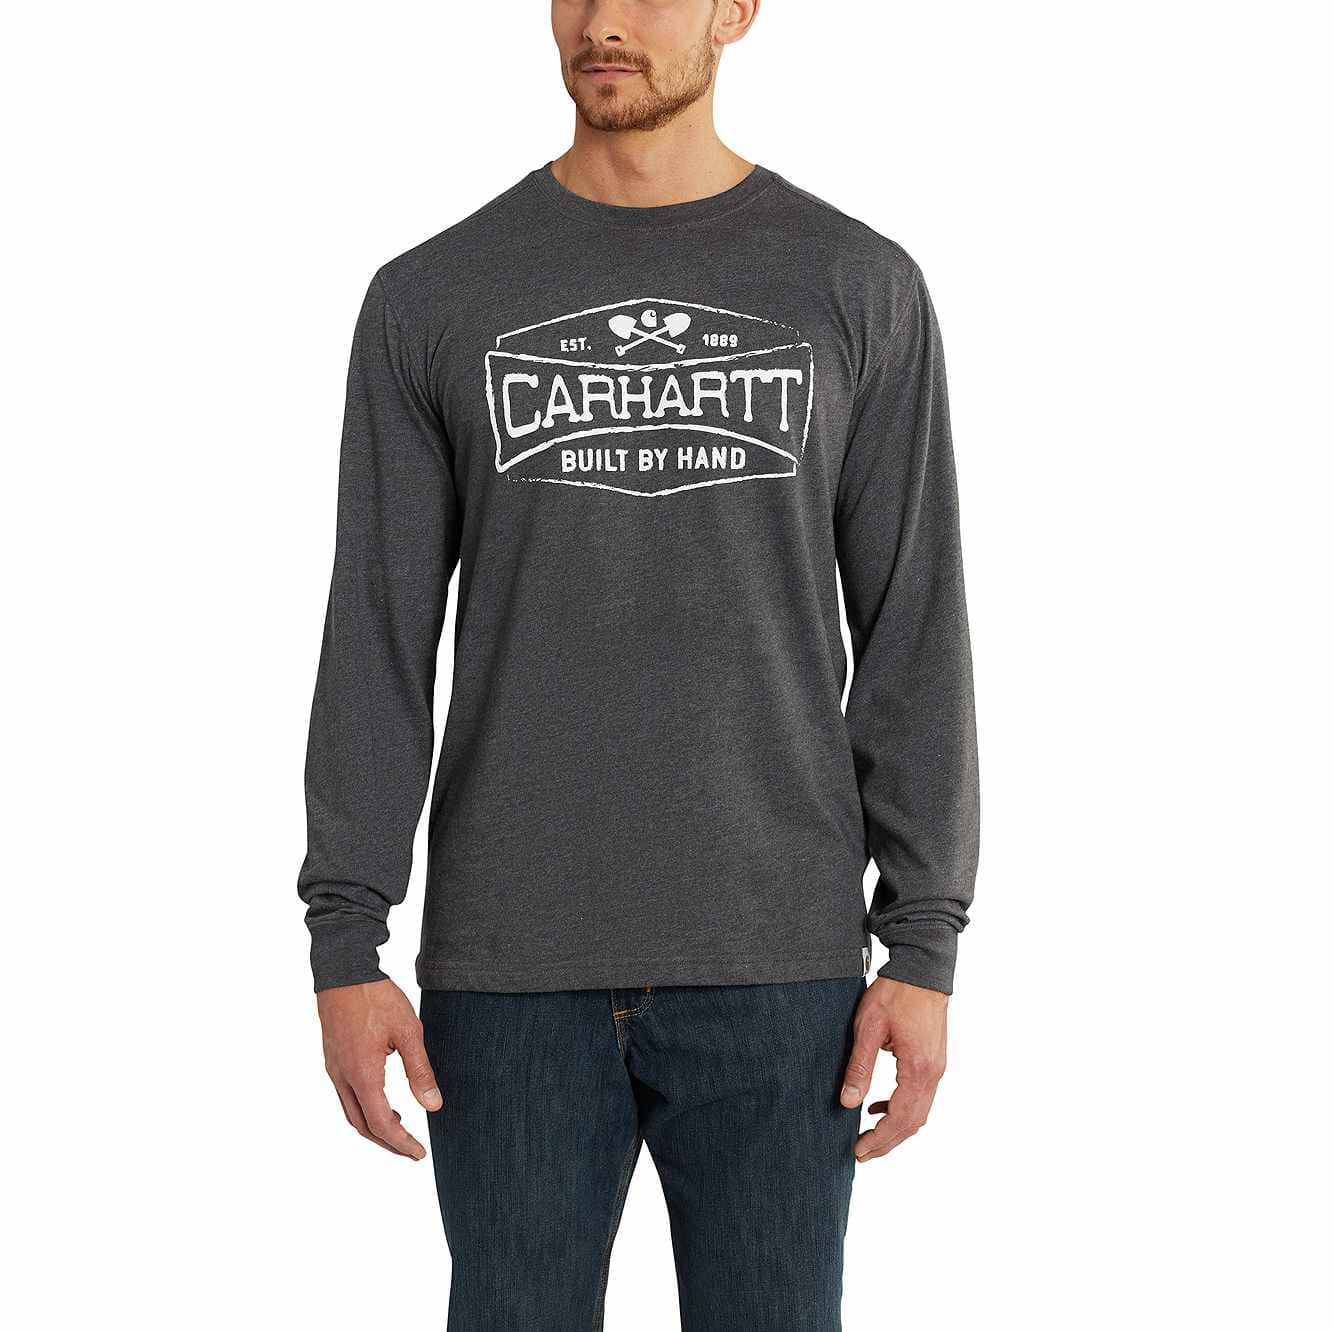 Picture of Maddock Graphic Handmade Long-Sleeve T-Shirt in Carbon Heather